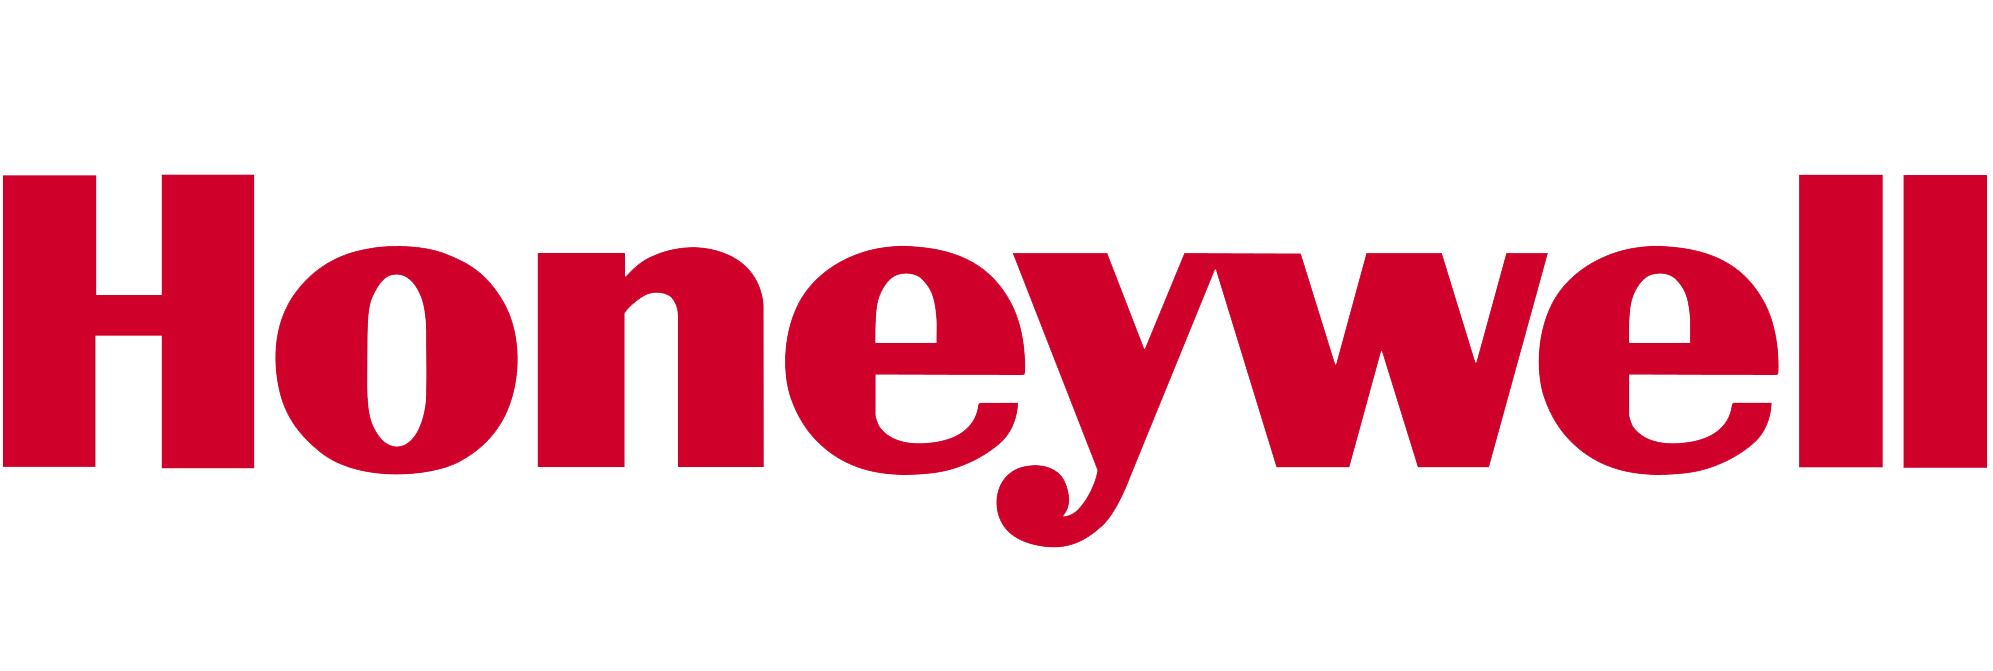 https://cas-technik.de/media/image/a3/1e/7b/HoneywellLogo4XLcHqw2OHhVI.png